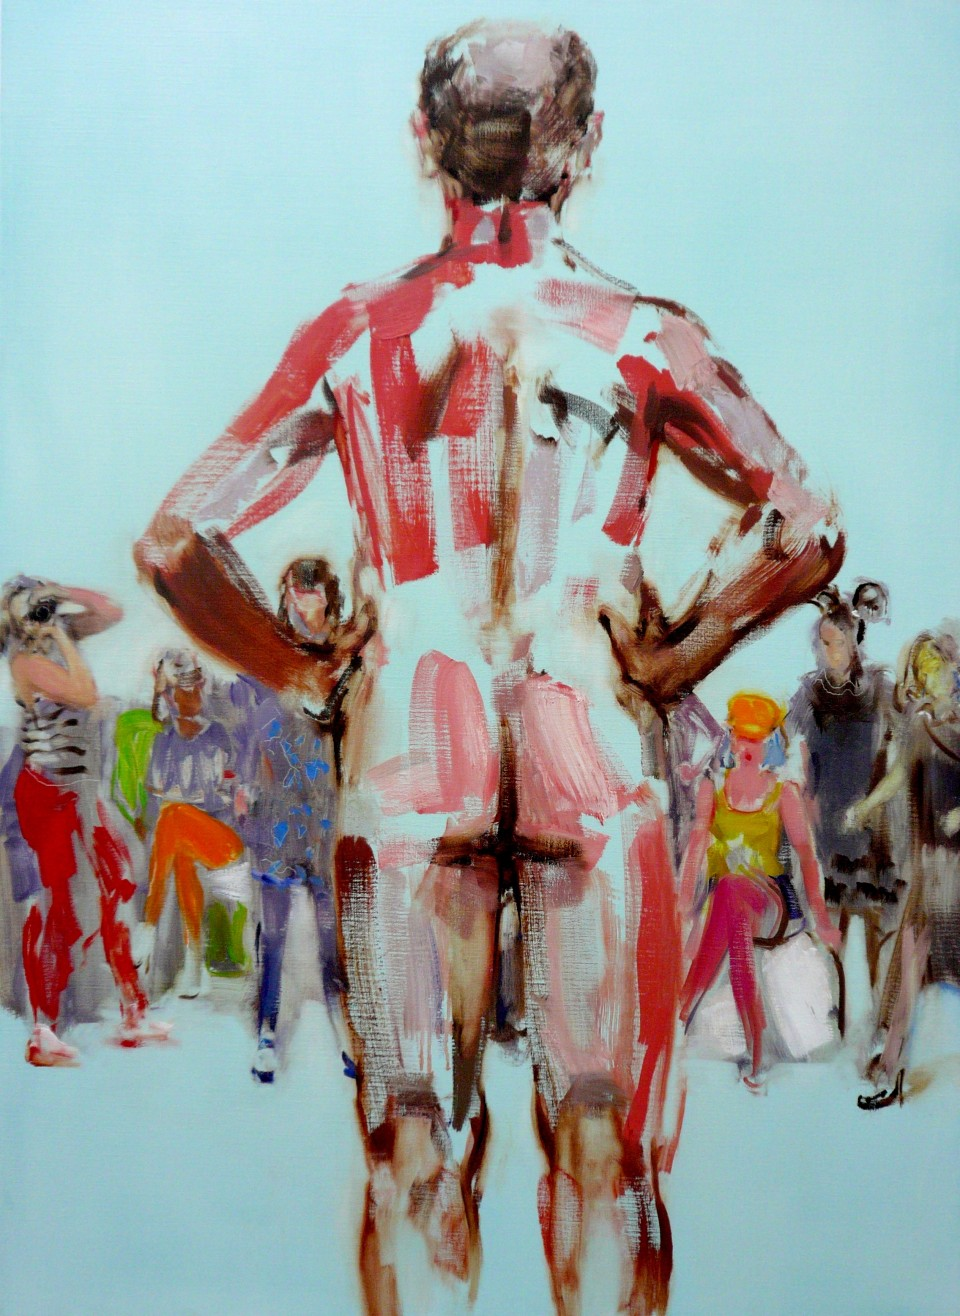 The Fashionistas are Coming  2017  oil on canvas  112 x 82 cm